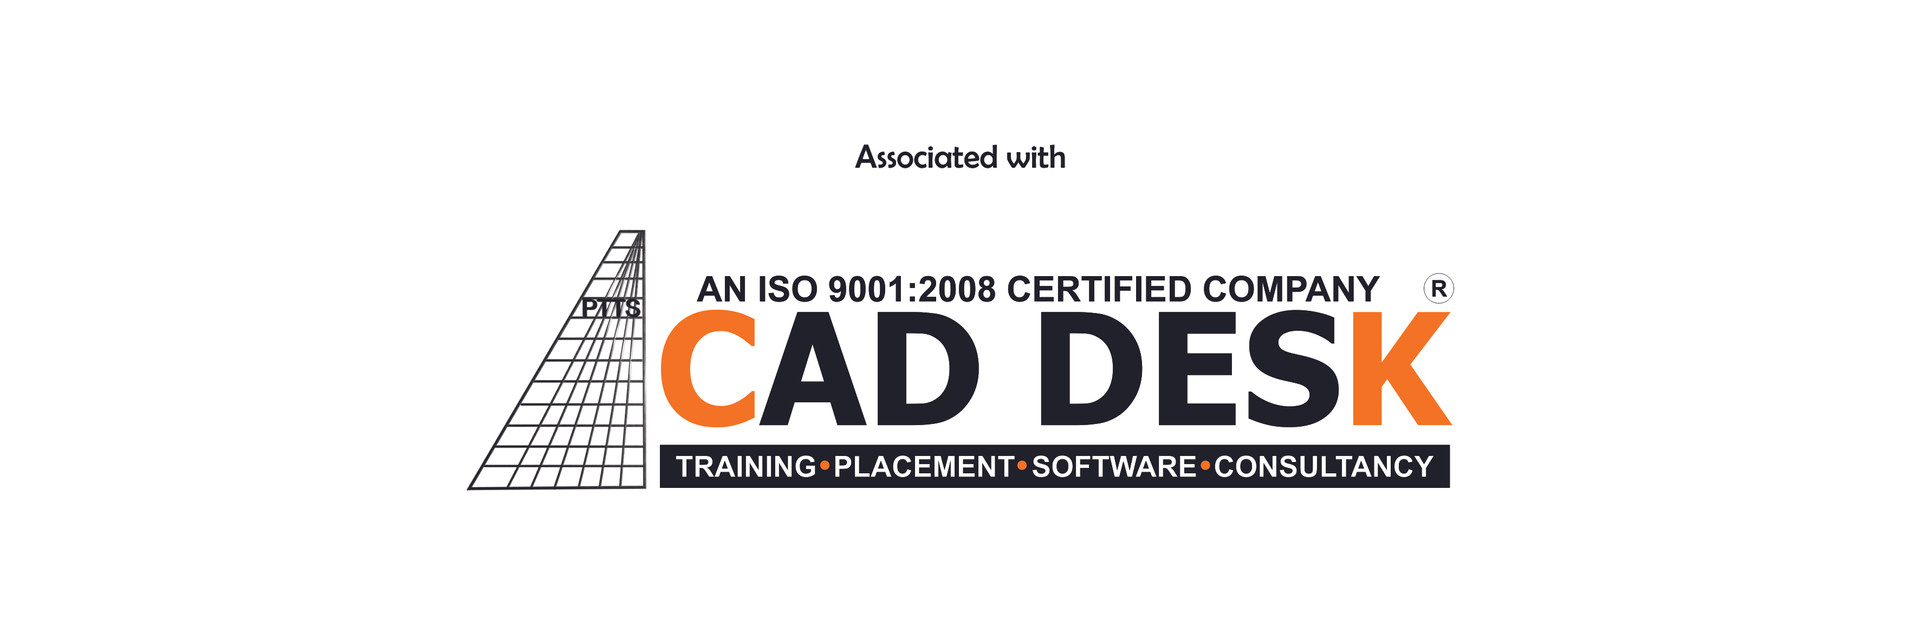 Cube CAD Center associated with CAD DESK